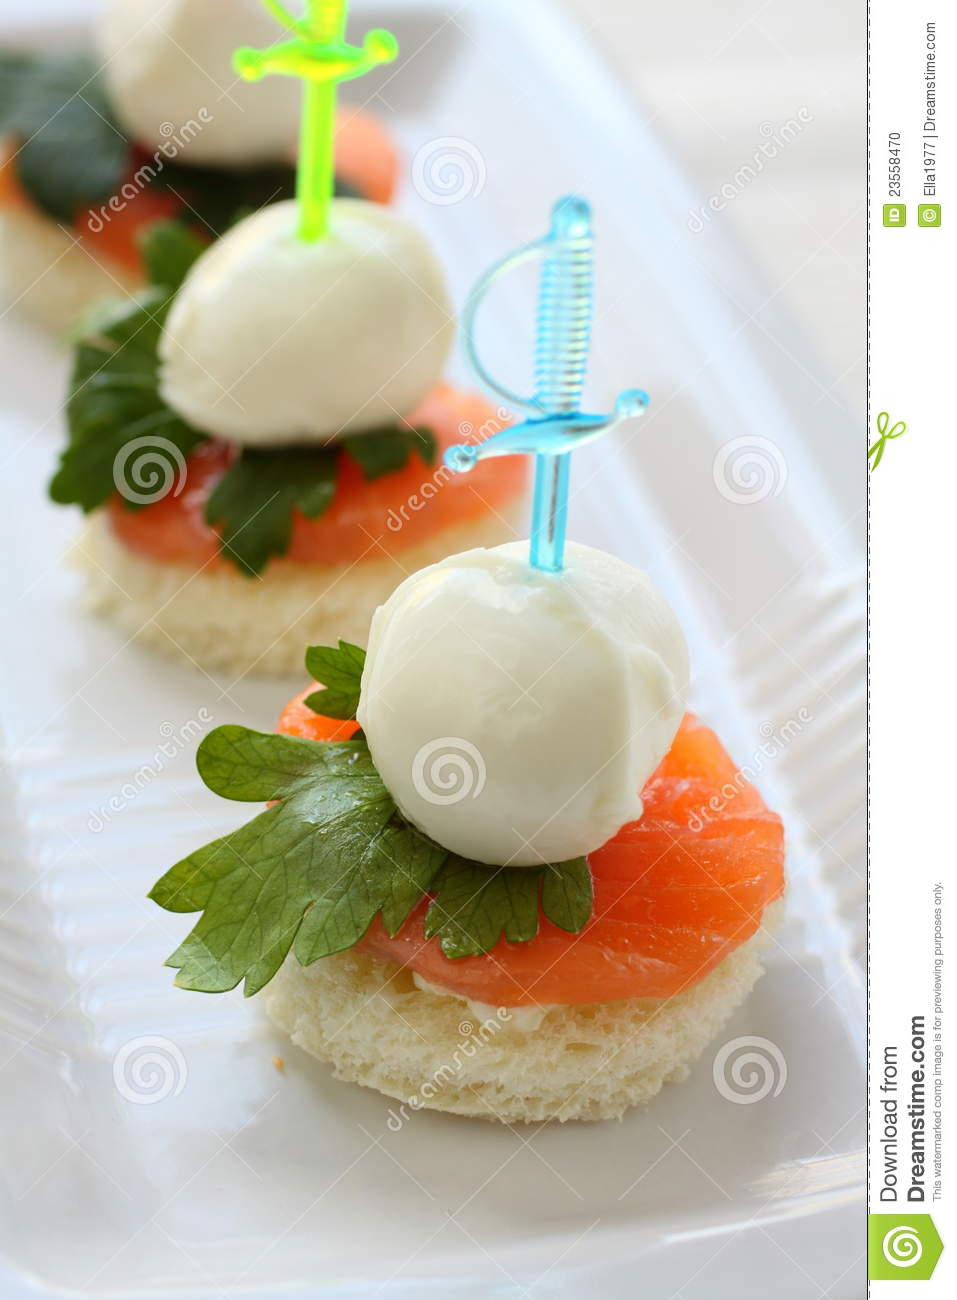 Canape de fromage de mozzarella photo stock image 23558470 for Mozzarella canape